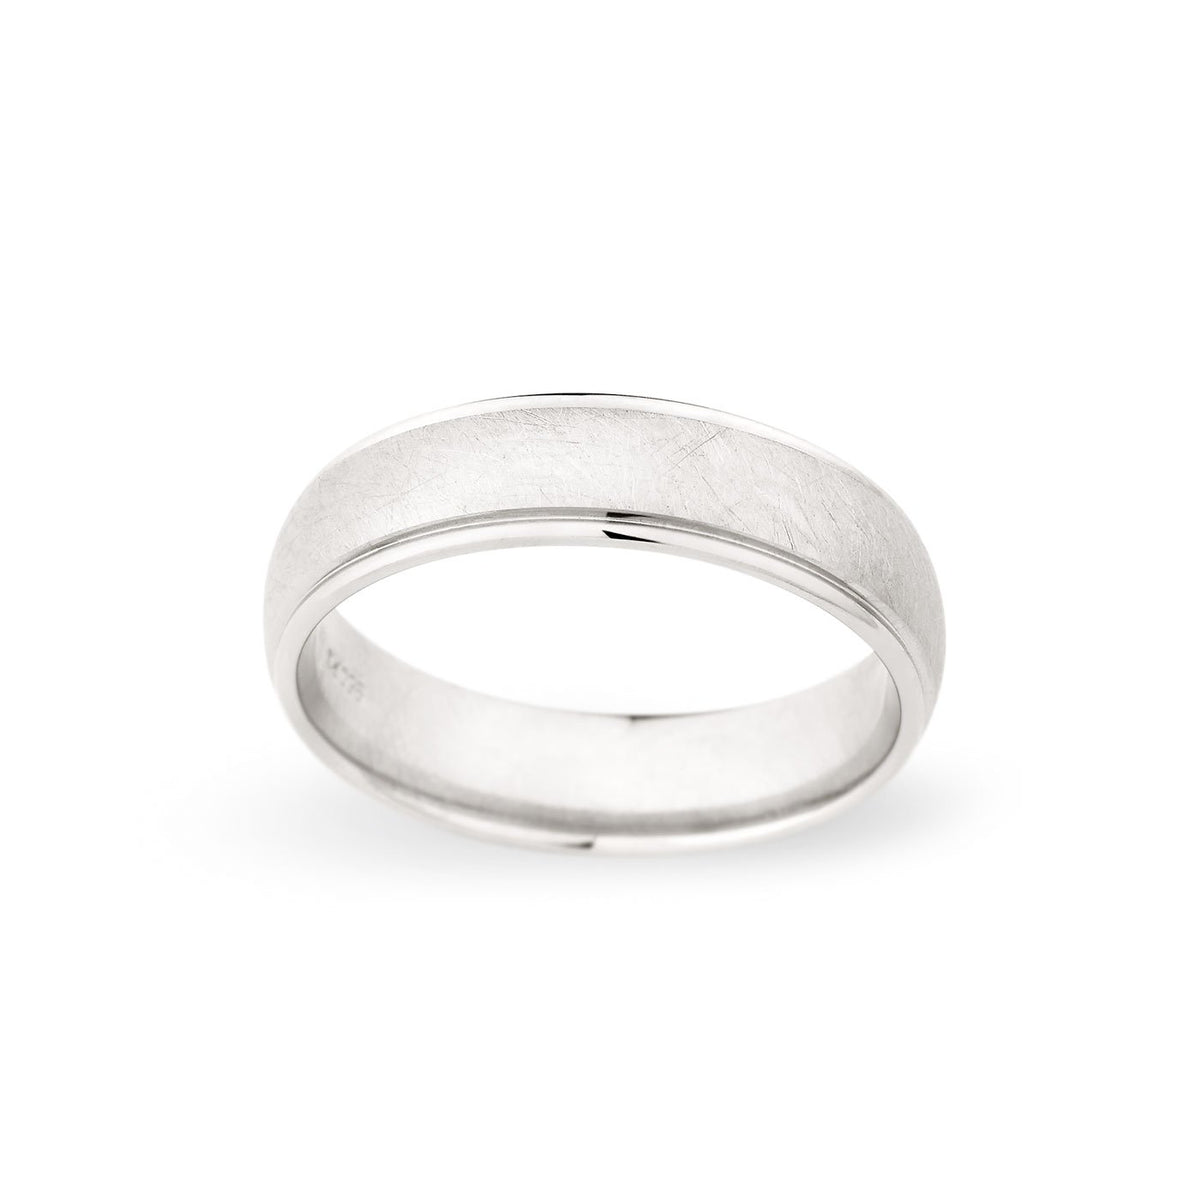 Palladium 6mm Brushed Polished Edged Band